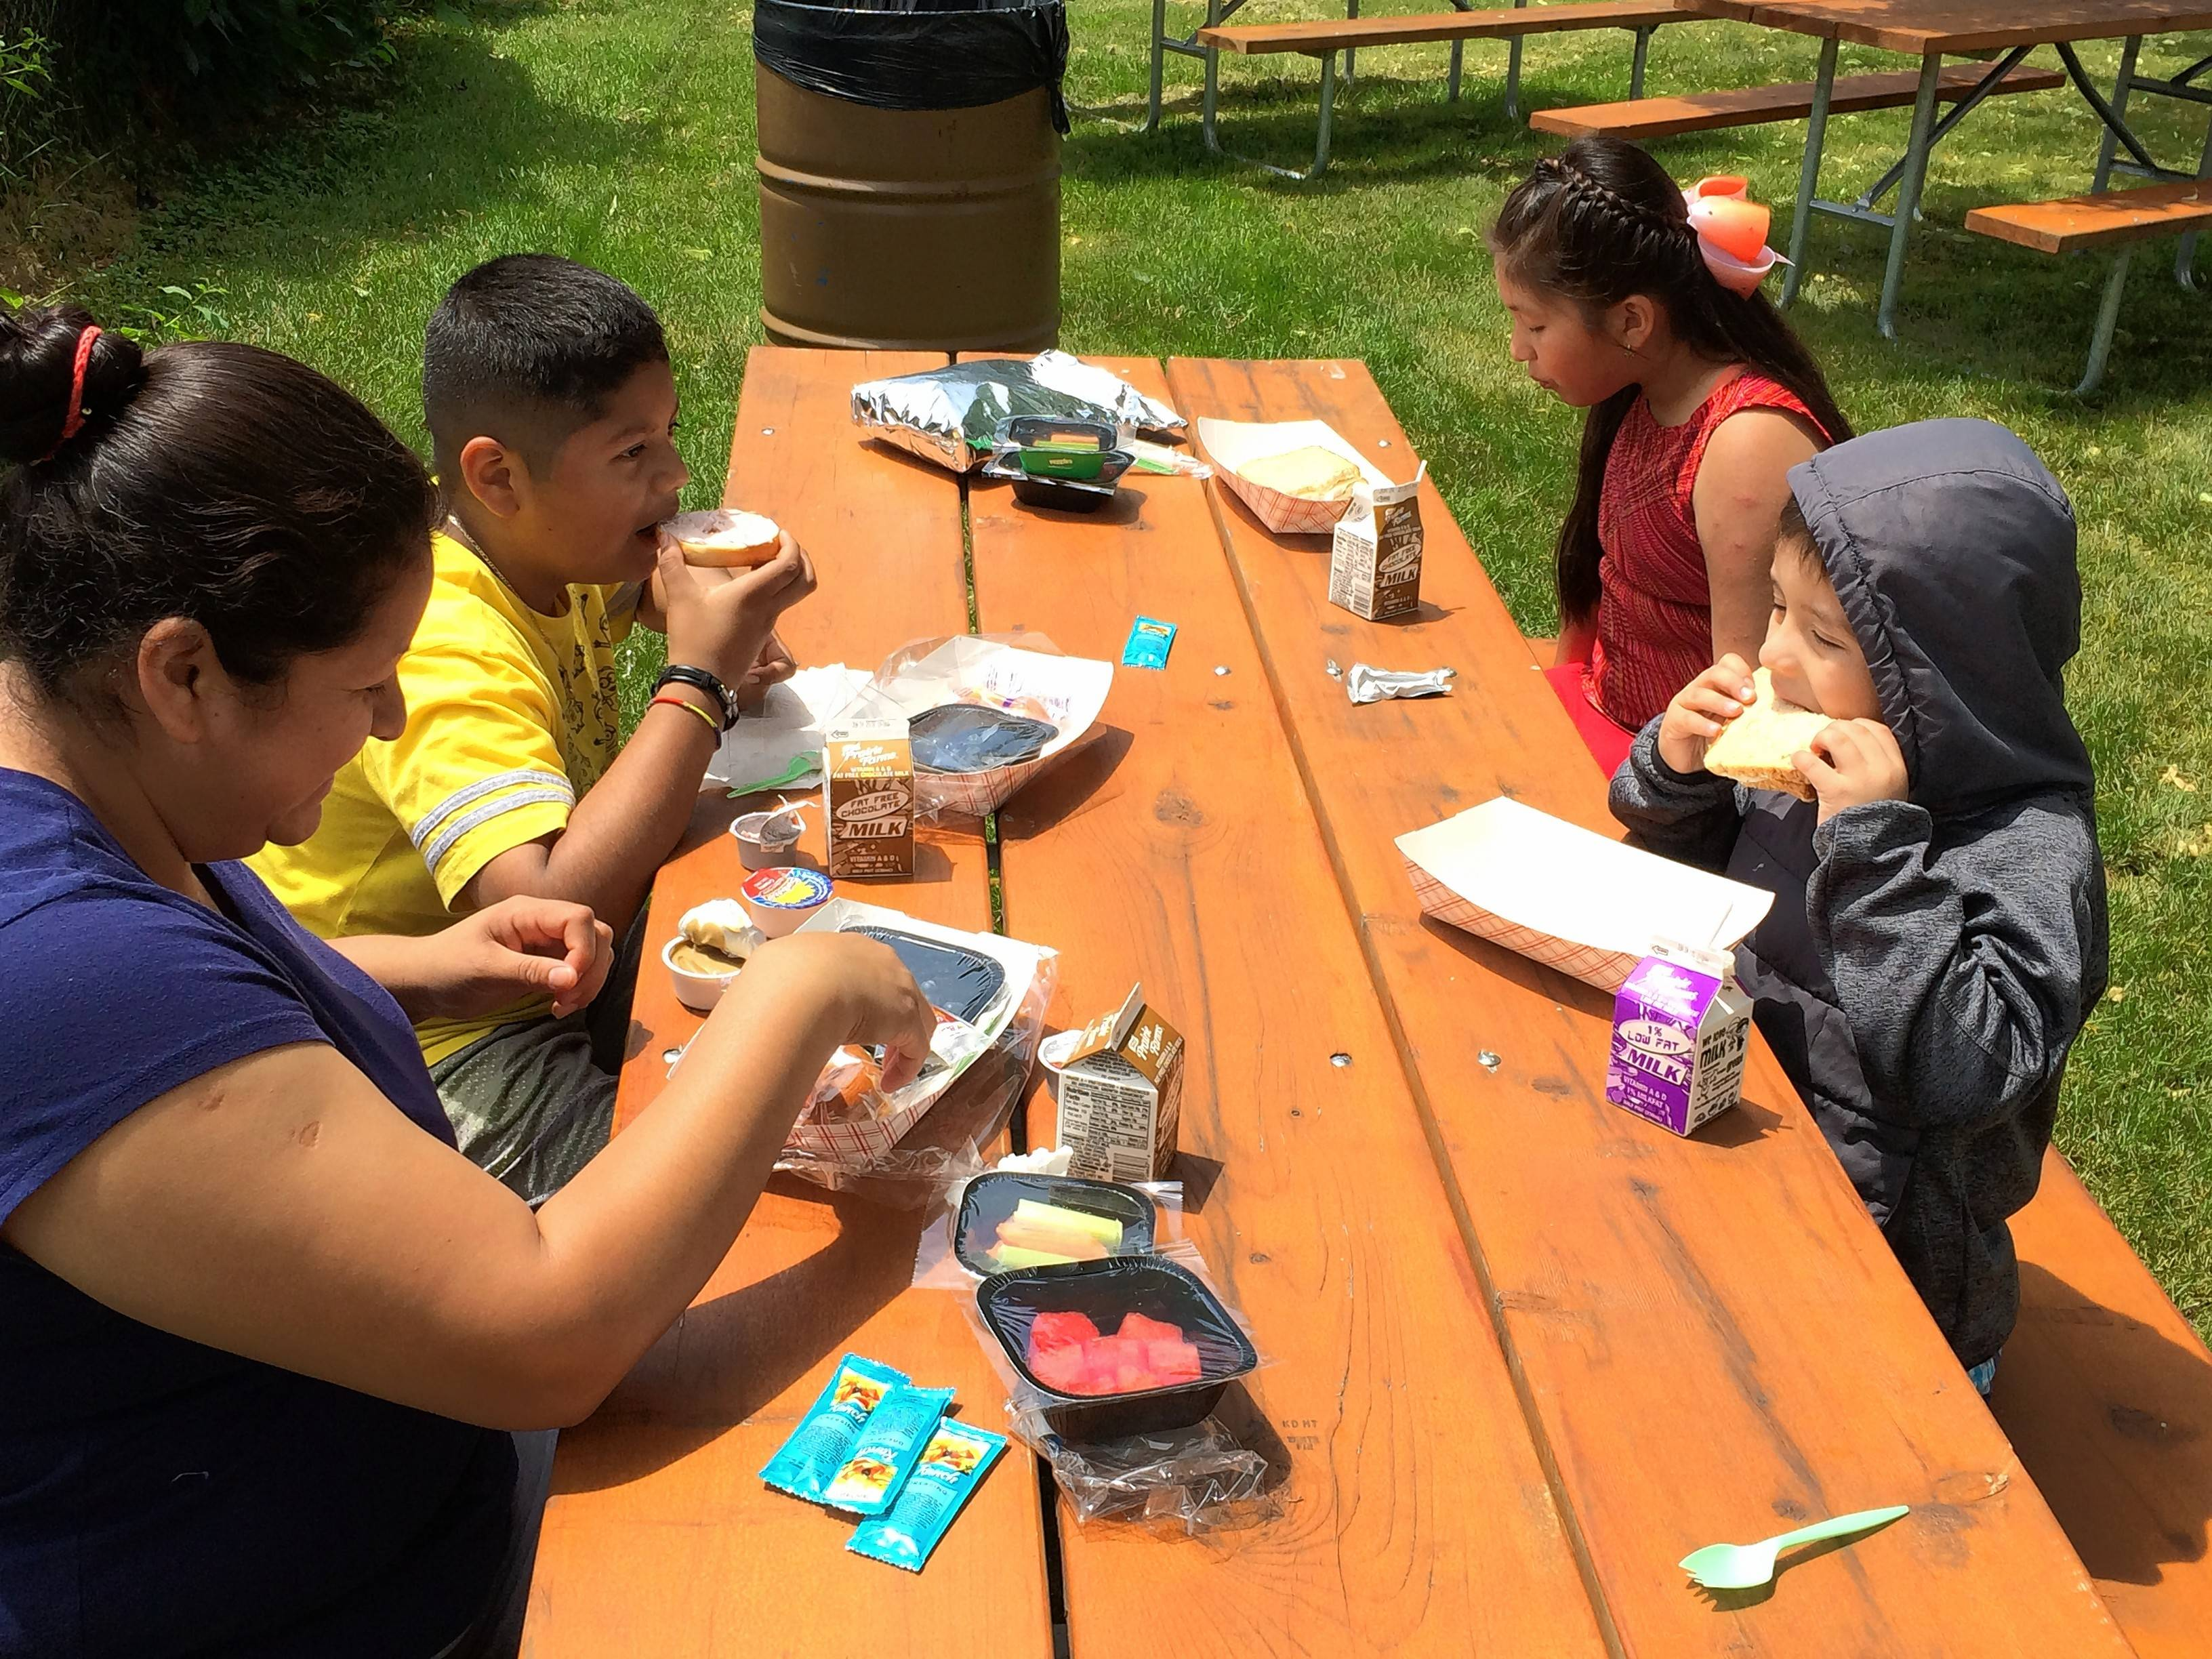 Wauconda volunteers feeding hungry kids over summer vacation